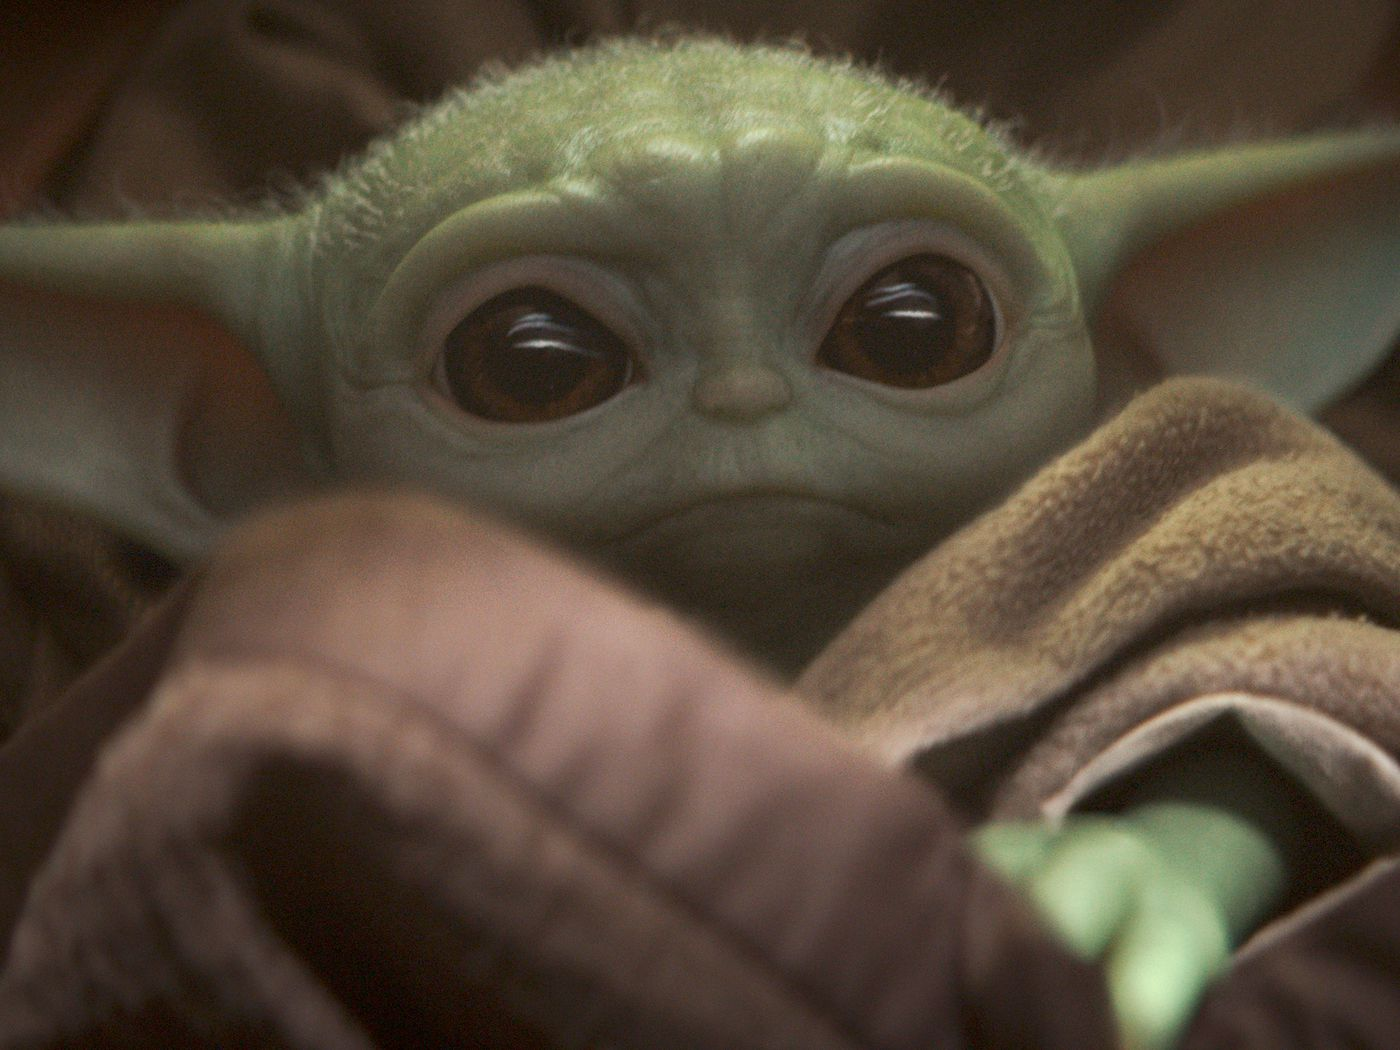 Baby Yoda Plush Toys Don T Exist Because Of Star Wars Spoilers Polygon